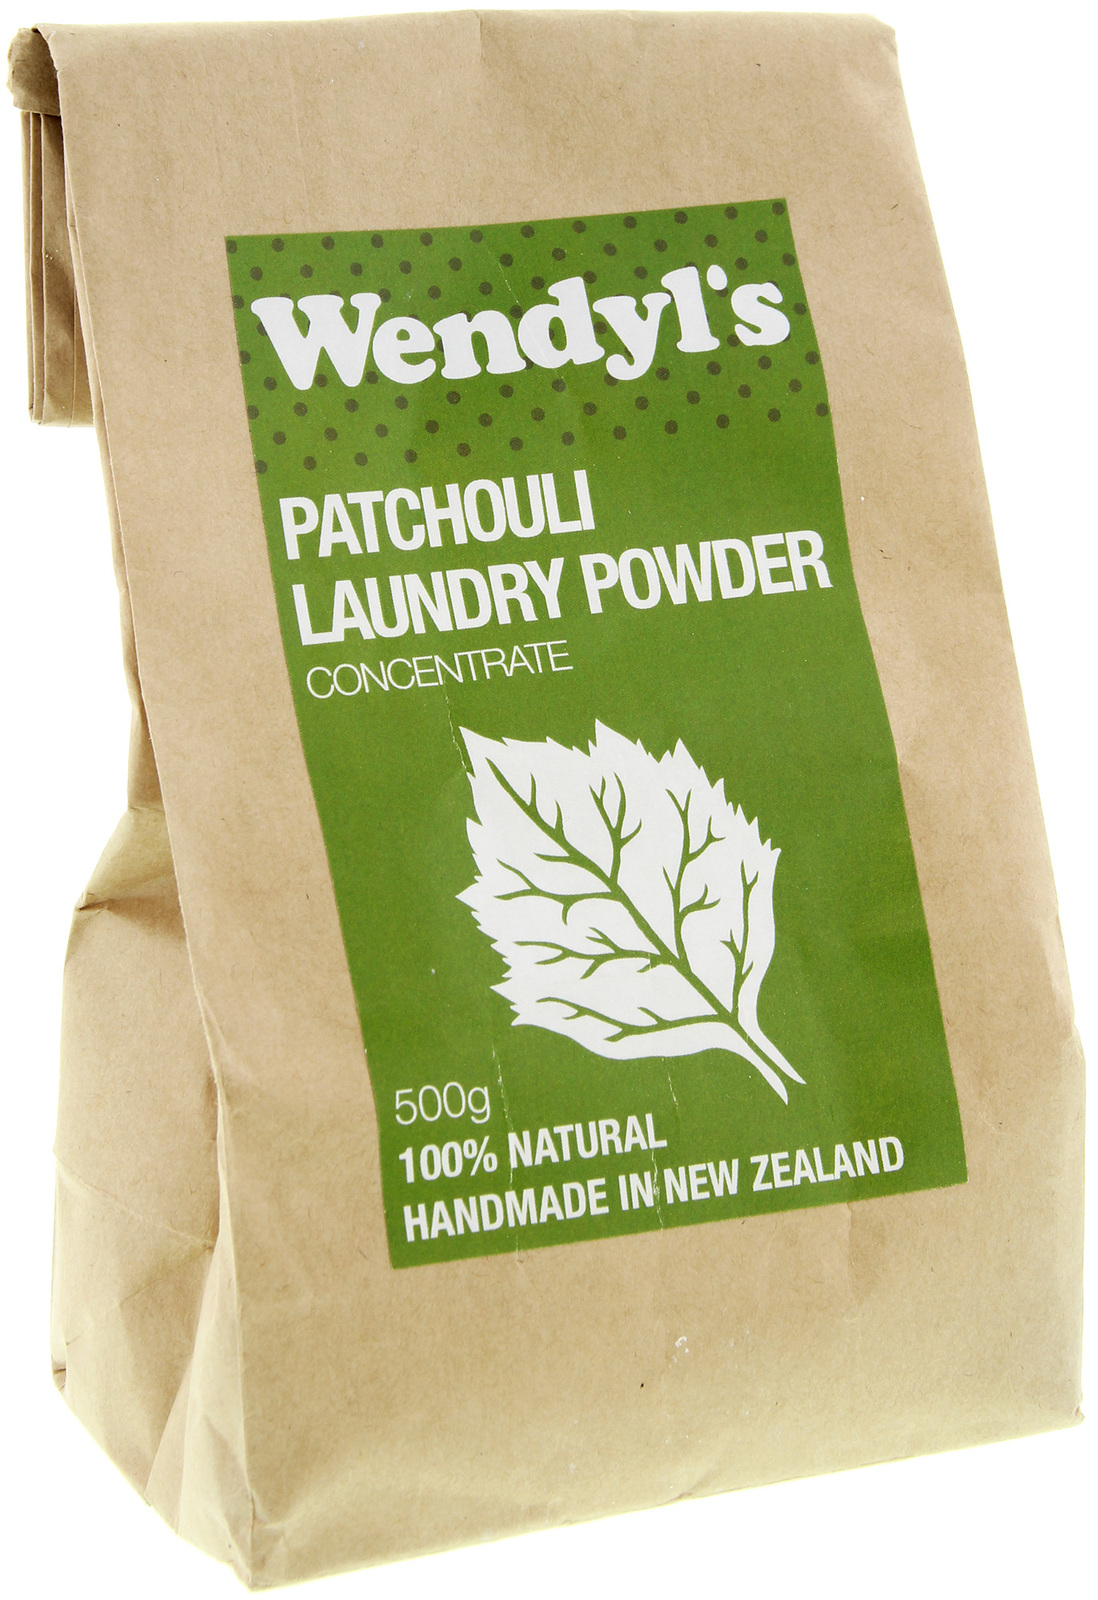 Wendyl's Green Goddess Patchouli Laundry Powder Concentrate